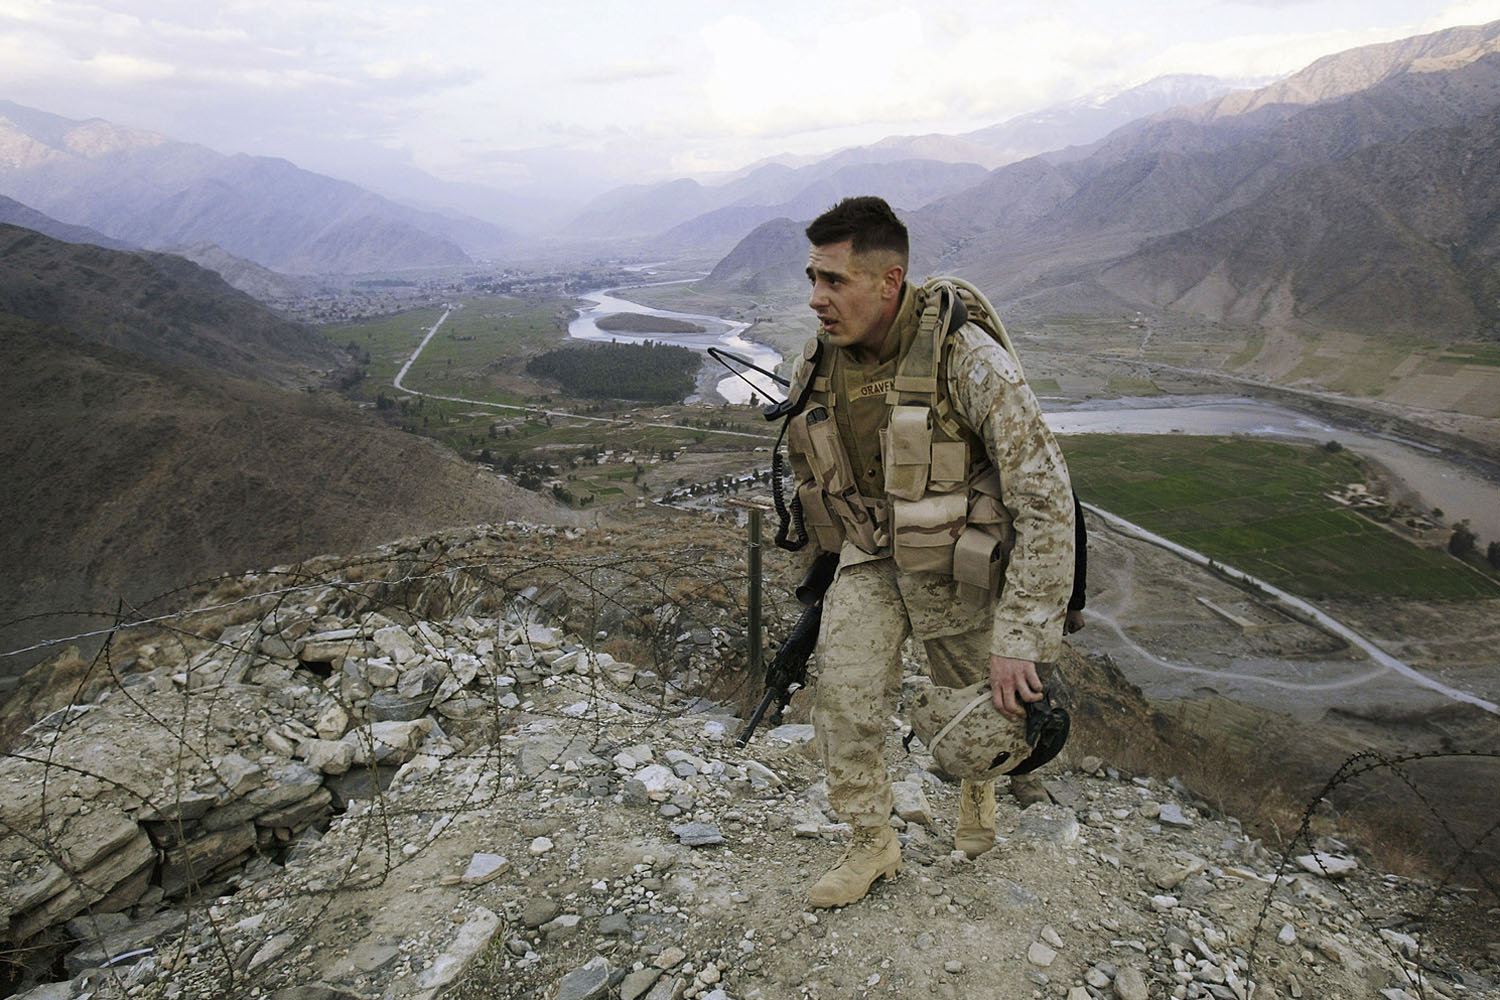 U.S. Marine Corporal Gravenese patrols in Asadabad, Kunar province, 10 kms from the Pakistan border. The Kunar River flows in the background. January, 2004